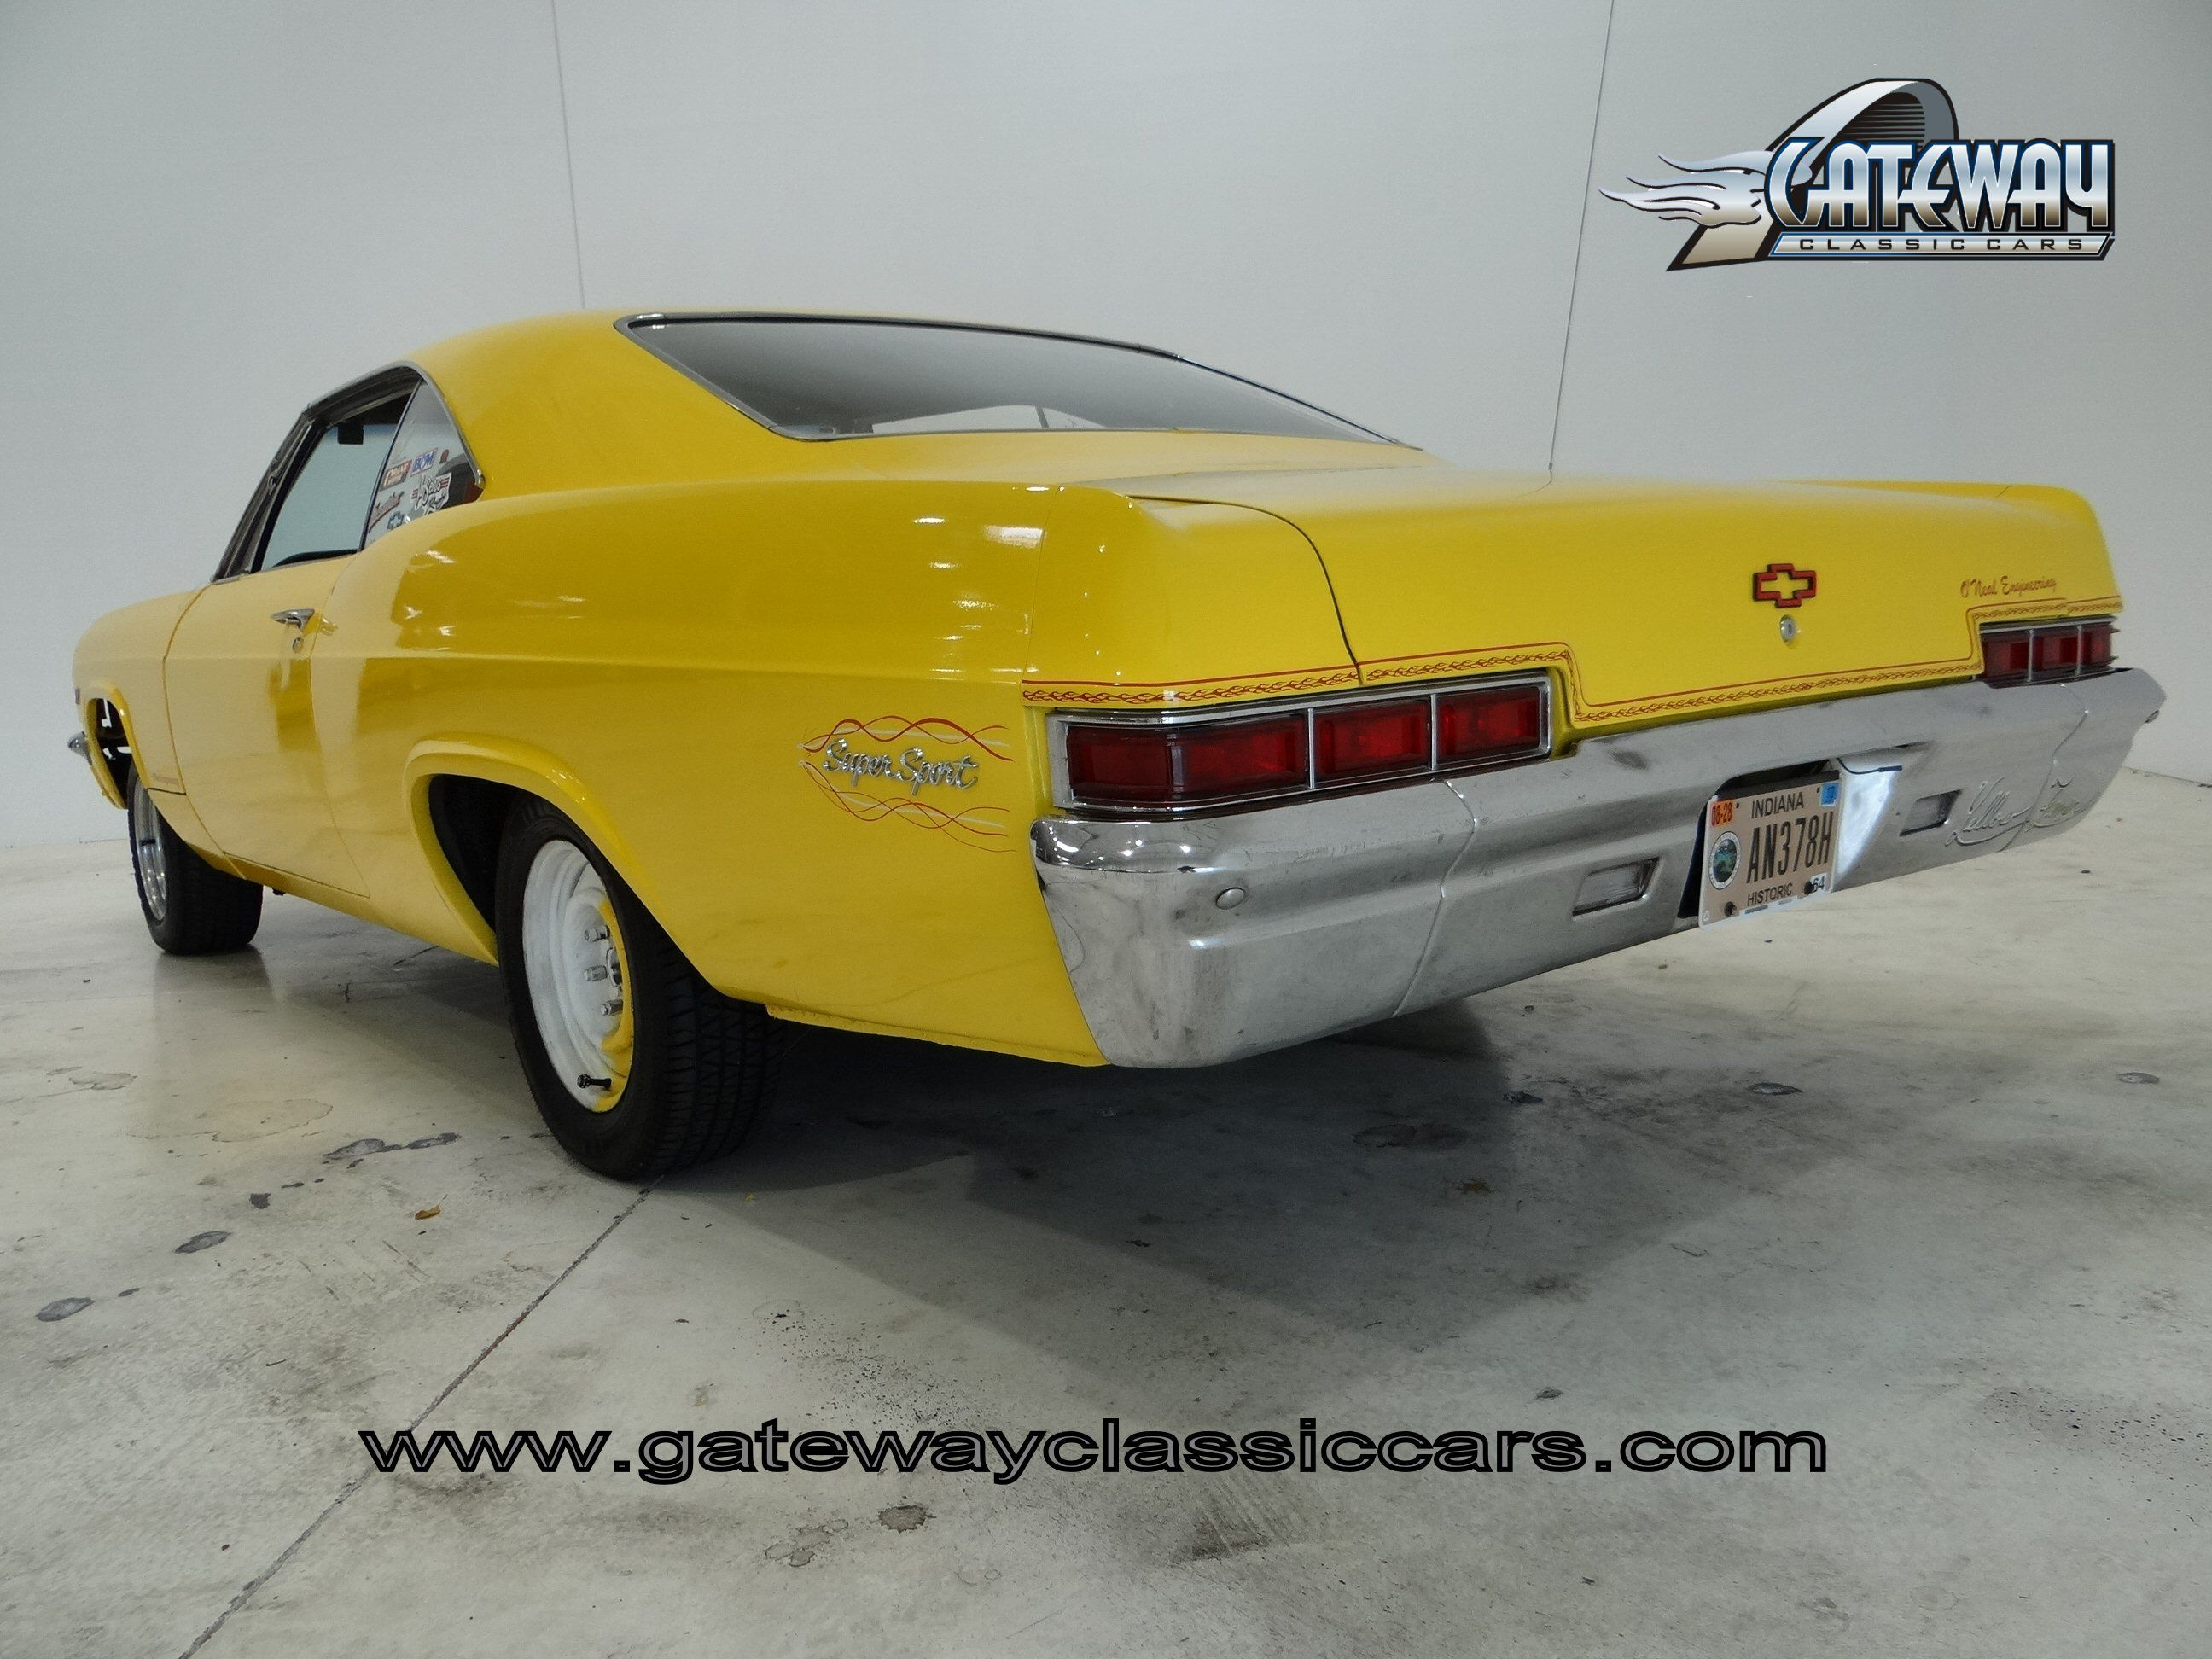 For sale in our chicago illinois showroom is a yellow 1966 chevrolet impala super sport clone 350 cid turbo 350 auto